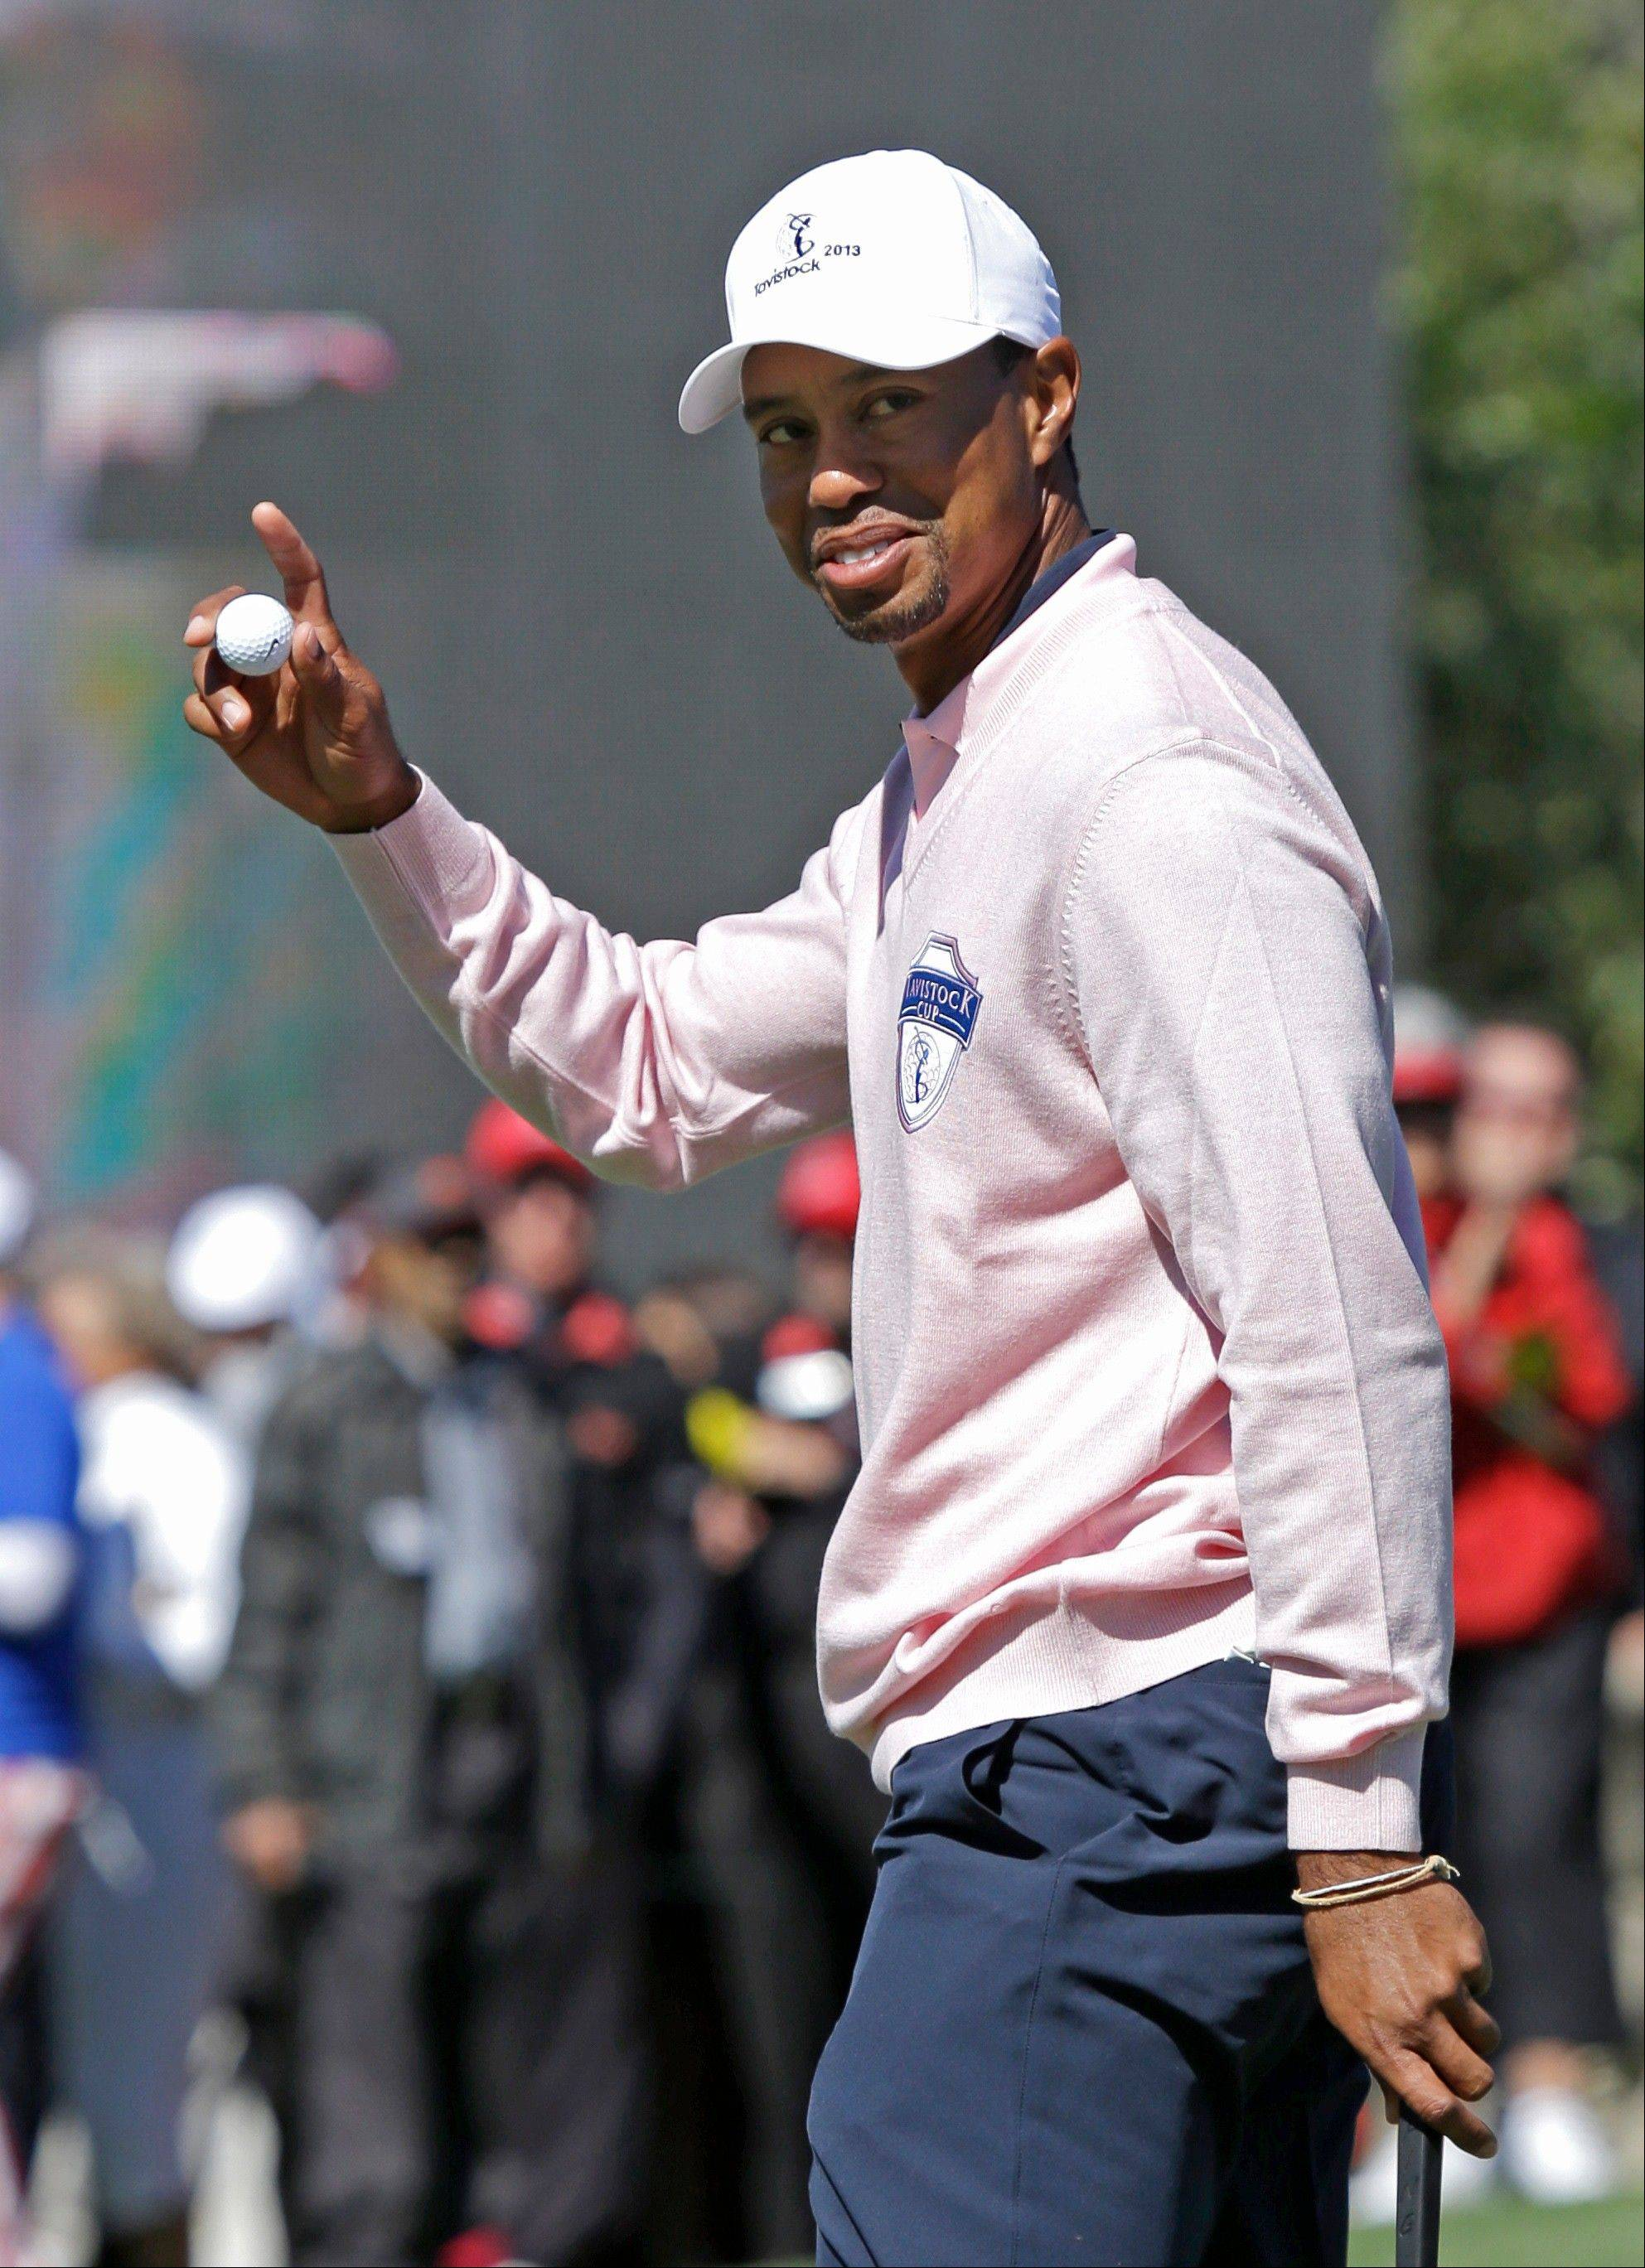 Tiger Woods waves to the gallery after his putt on the 18th green during the Tavistock Cup golf tournament, Tuesday, March 26, 2013, in Windermere, Fla.